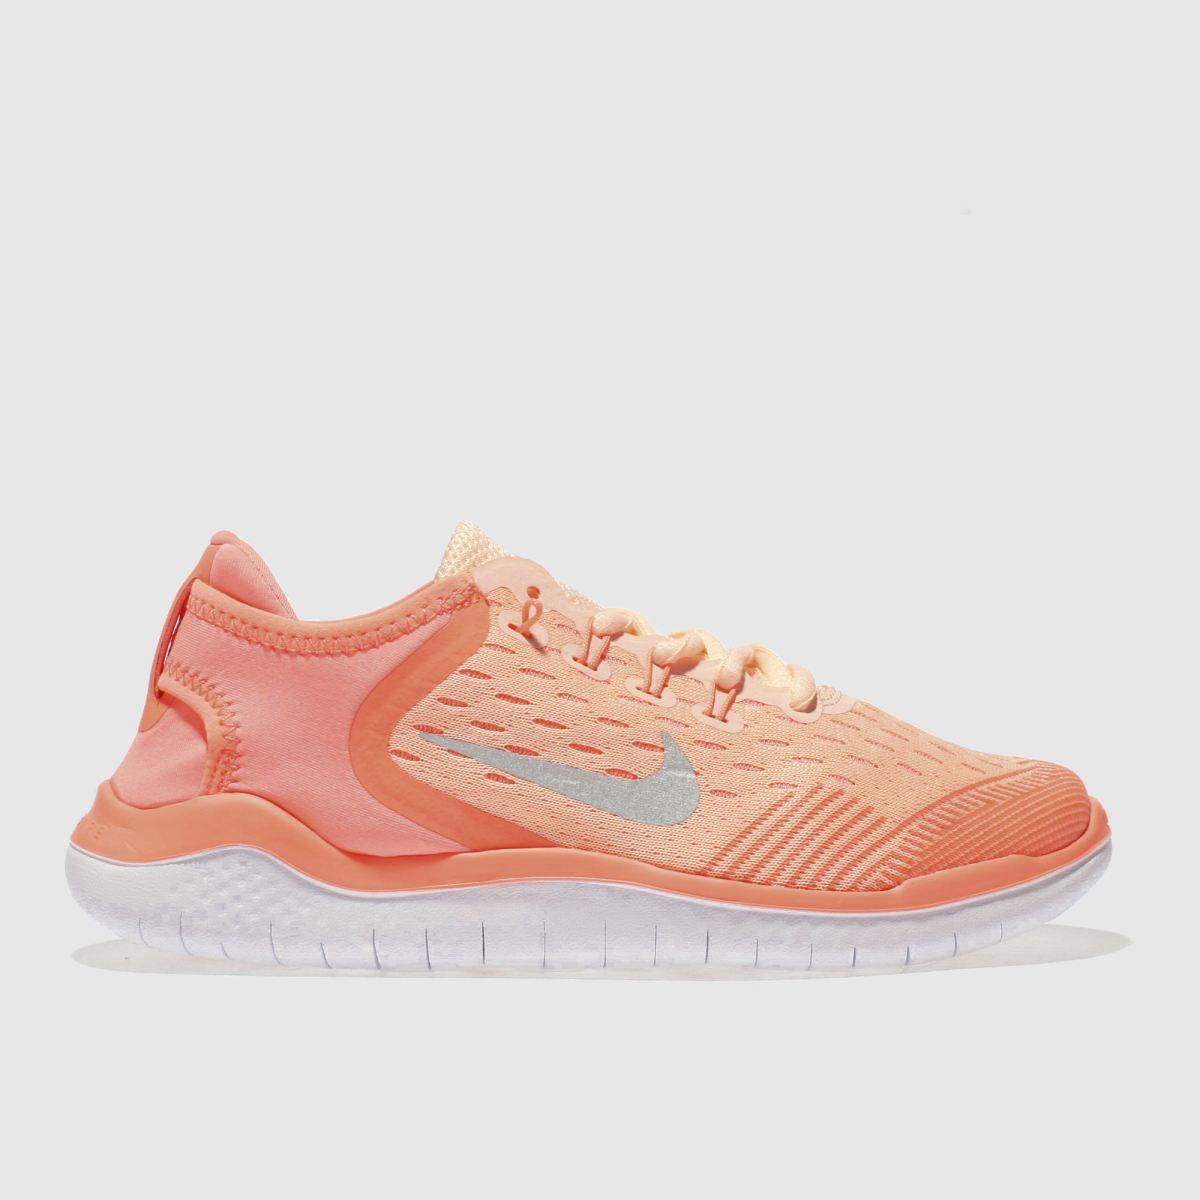 Nike Neon Peach Free Rn 2018 Girls Youth Youth